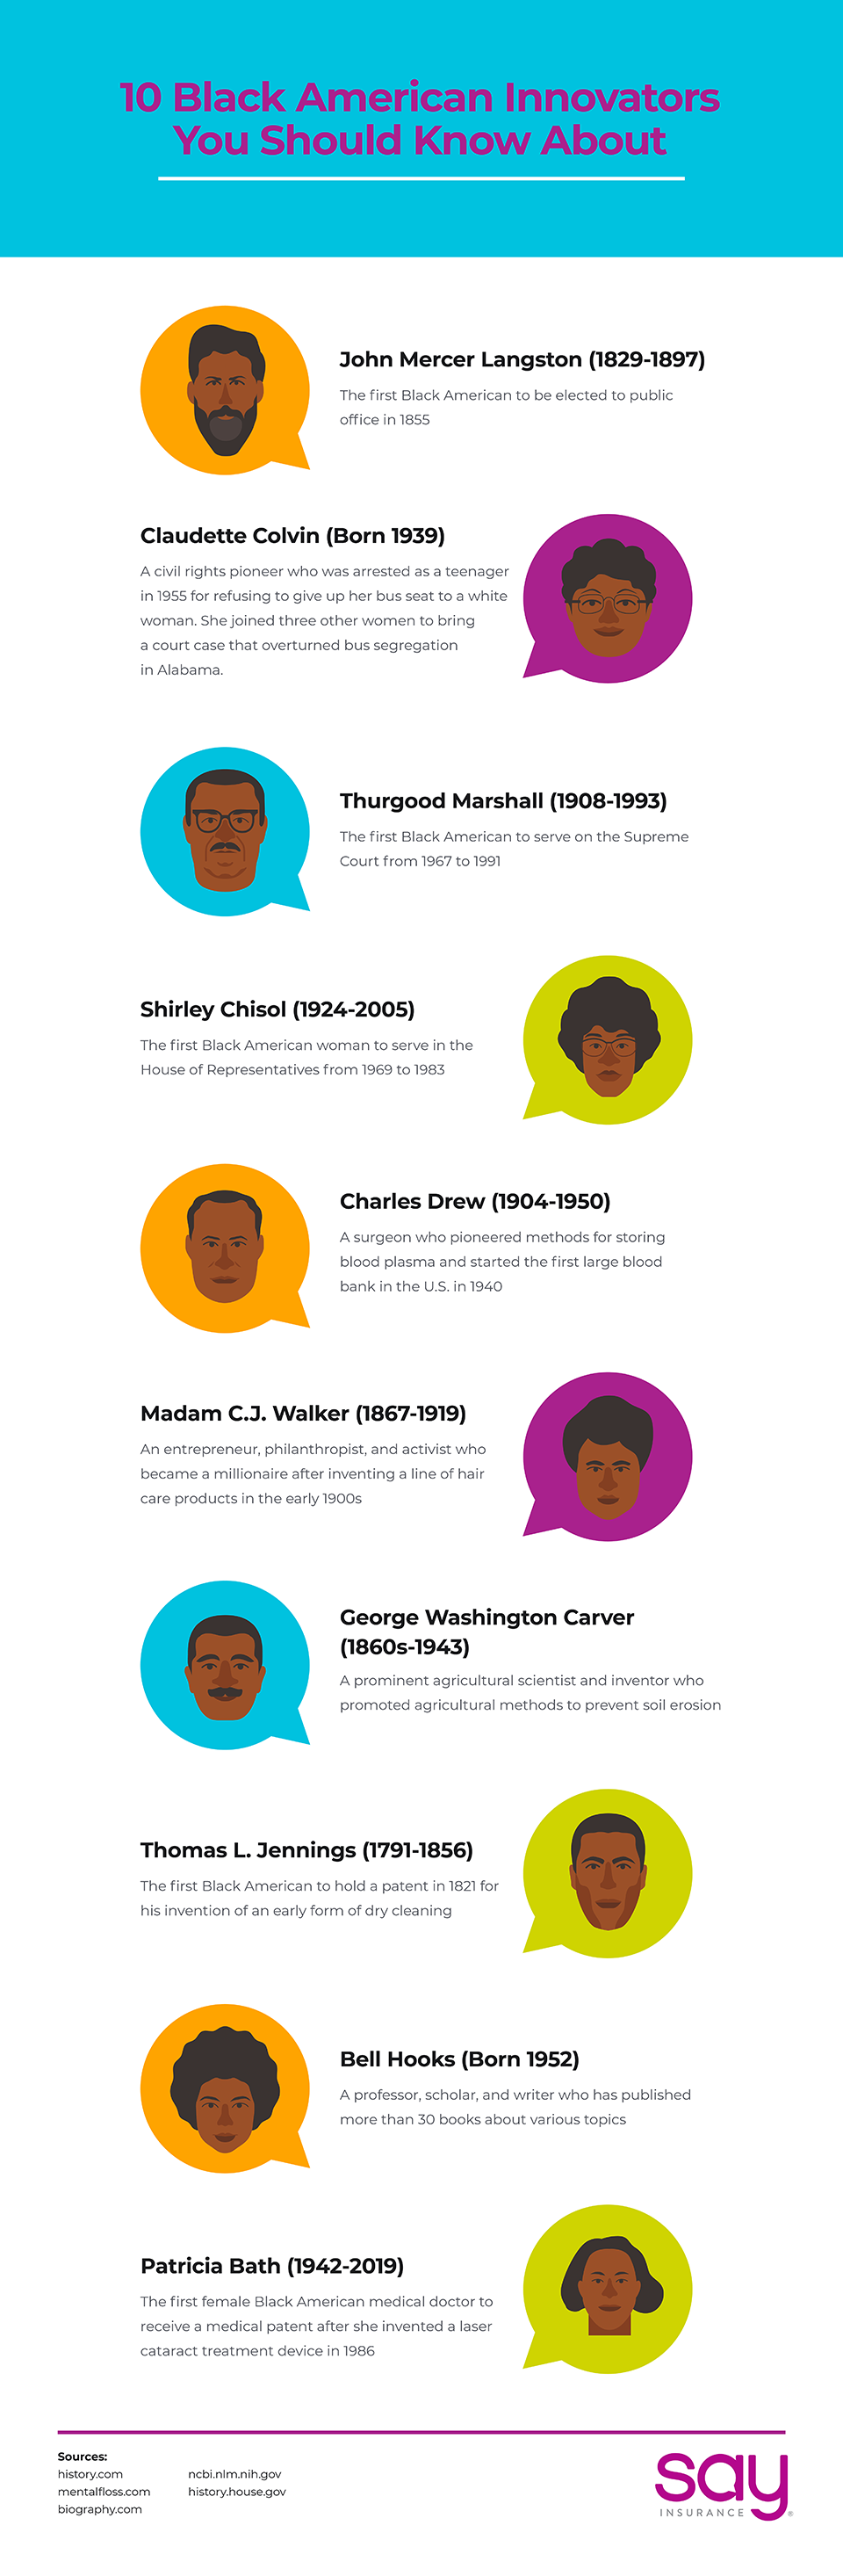 10 Black American Innovators You Should Know About